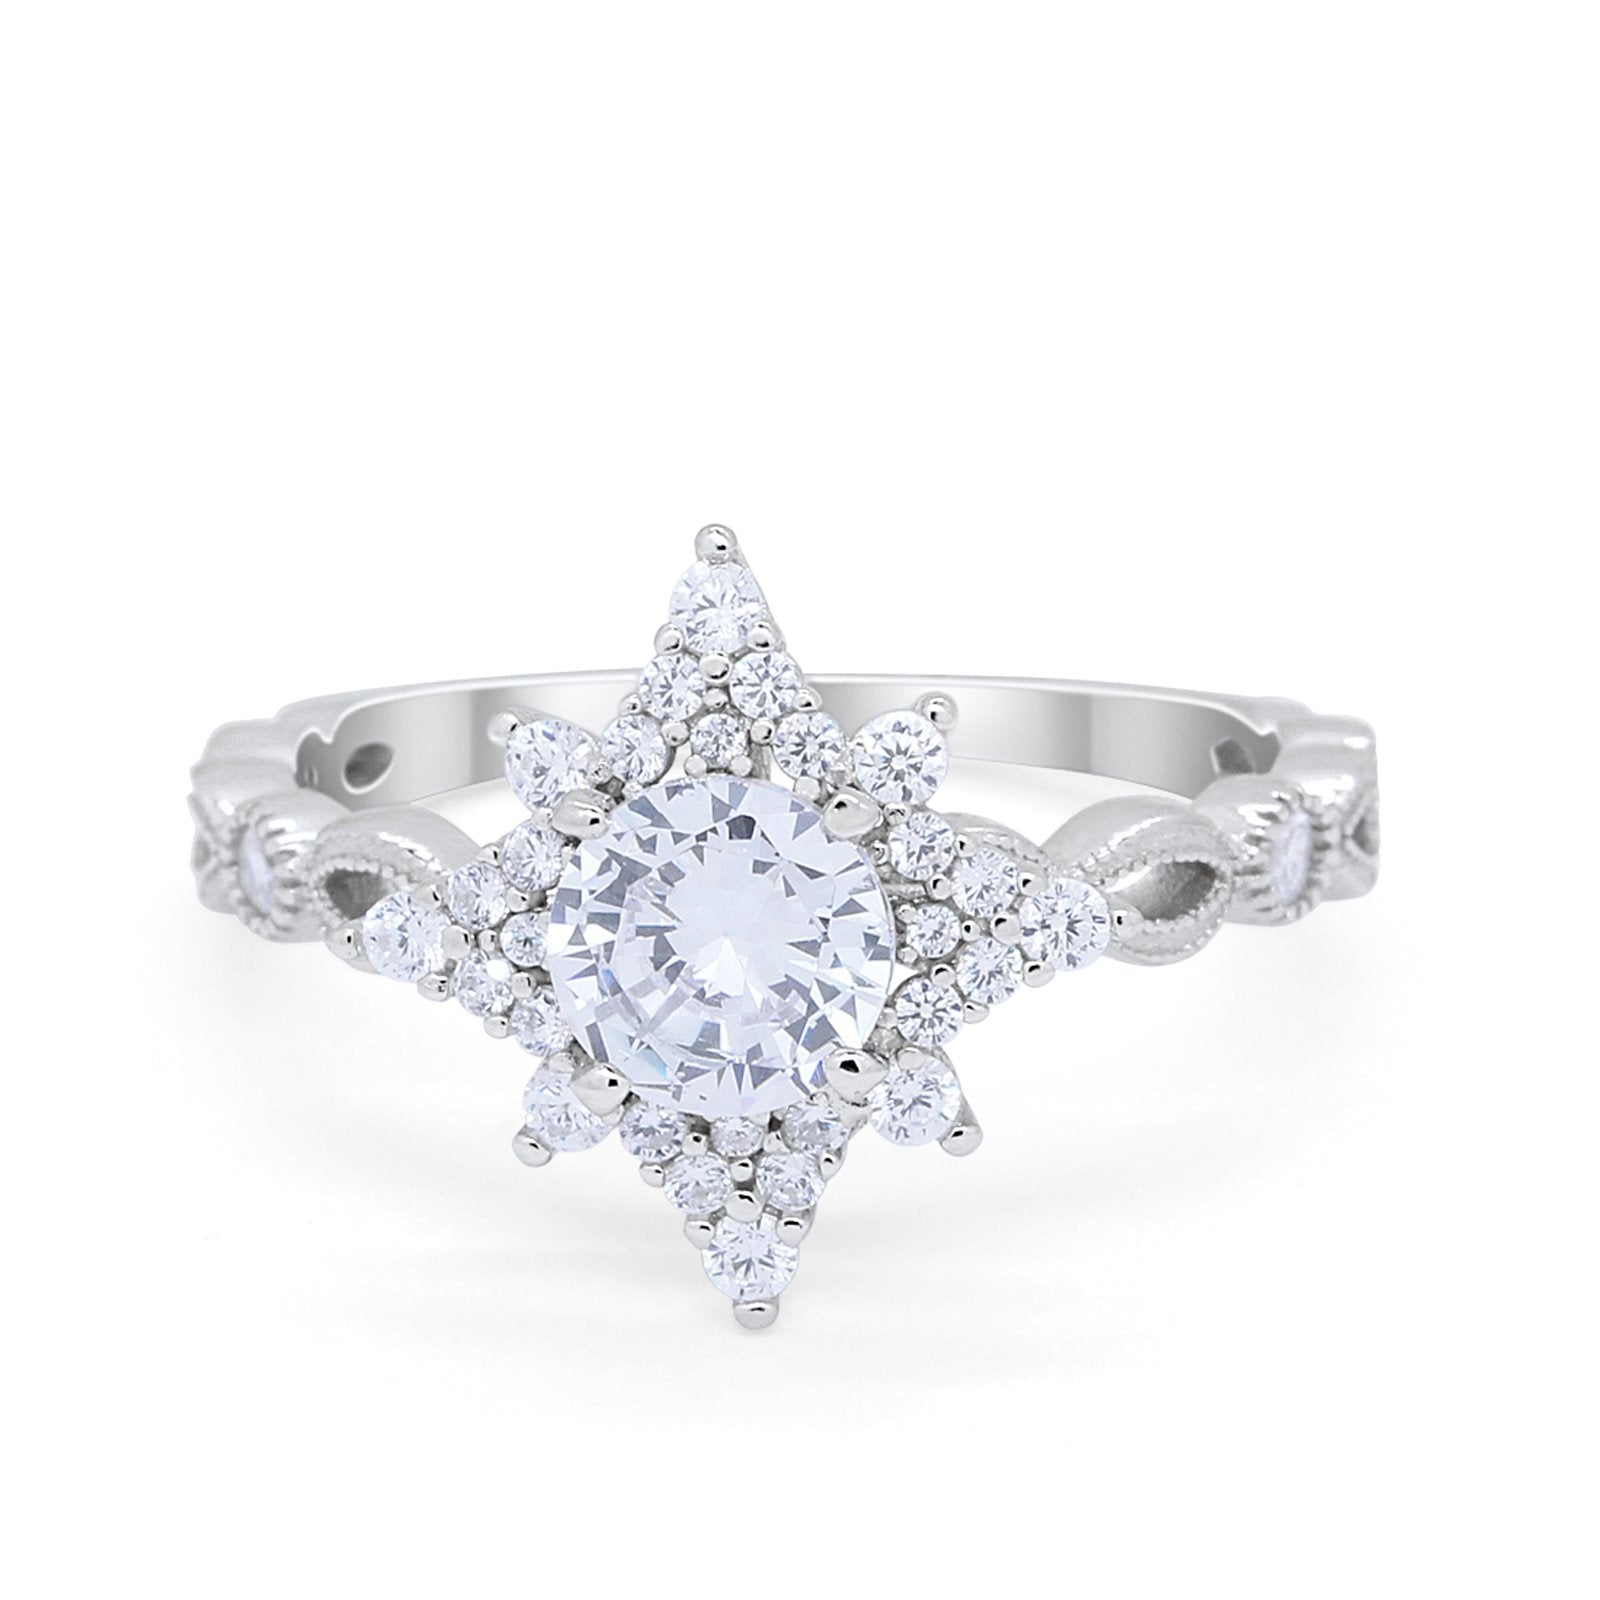 Floral Vintage Style Engagement Ring Round Simulated Cubic Zirconia 925 Sterling Silver